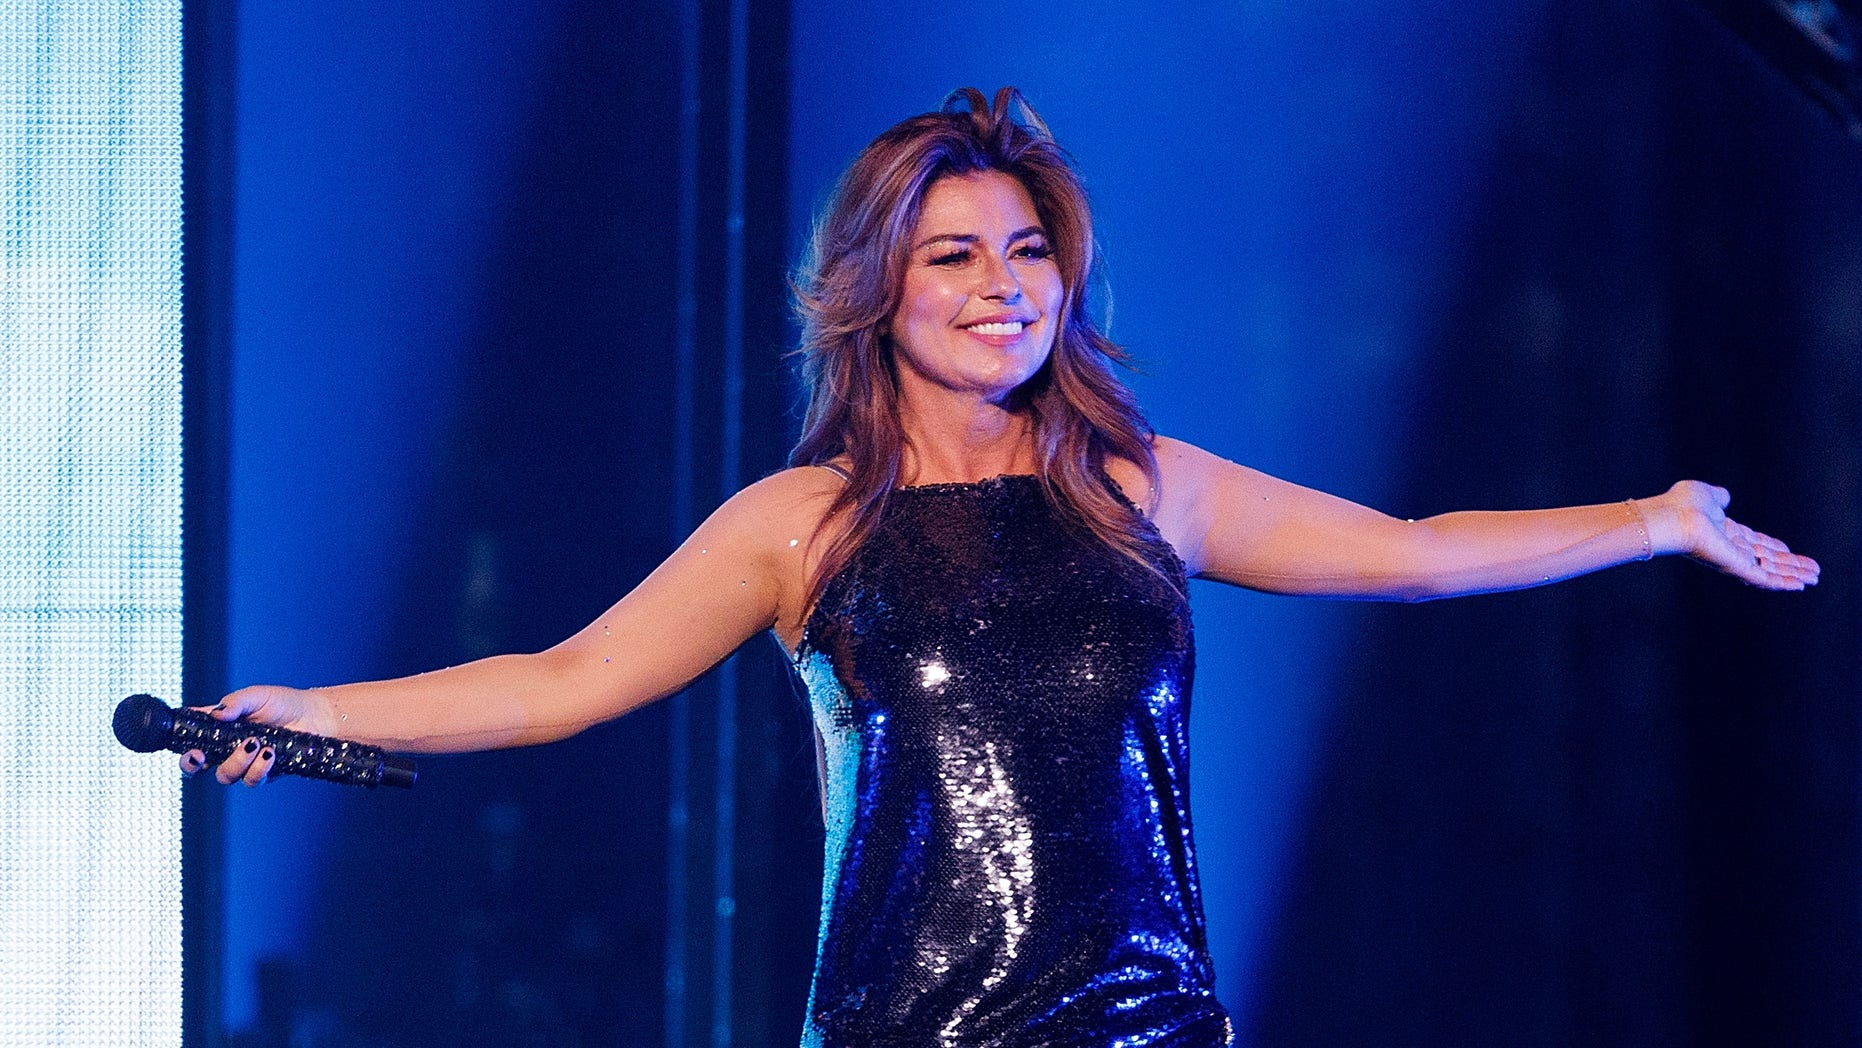 Shania Twain said she's bored of country music today and wants more female representation in the genre.